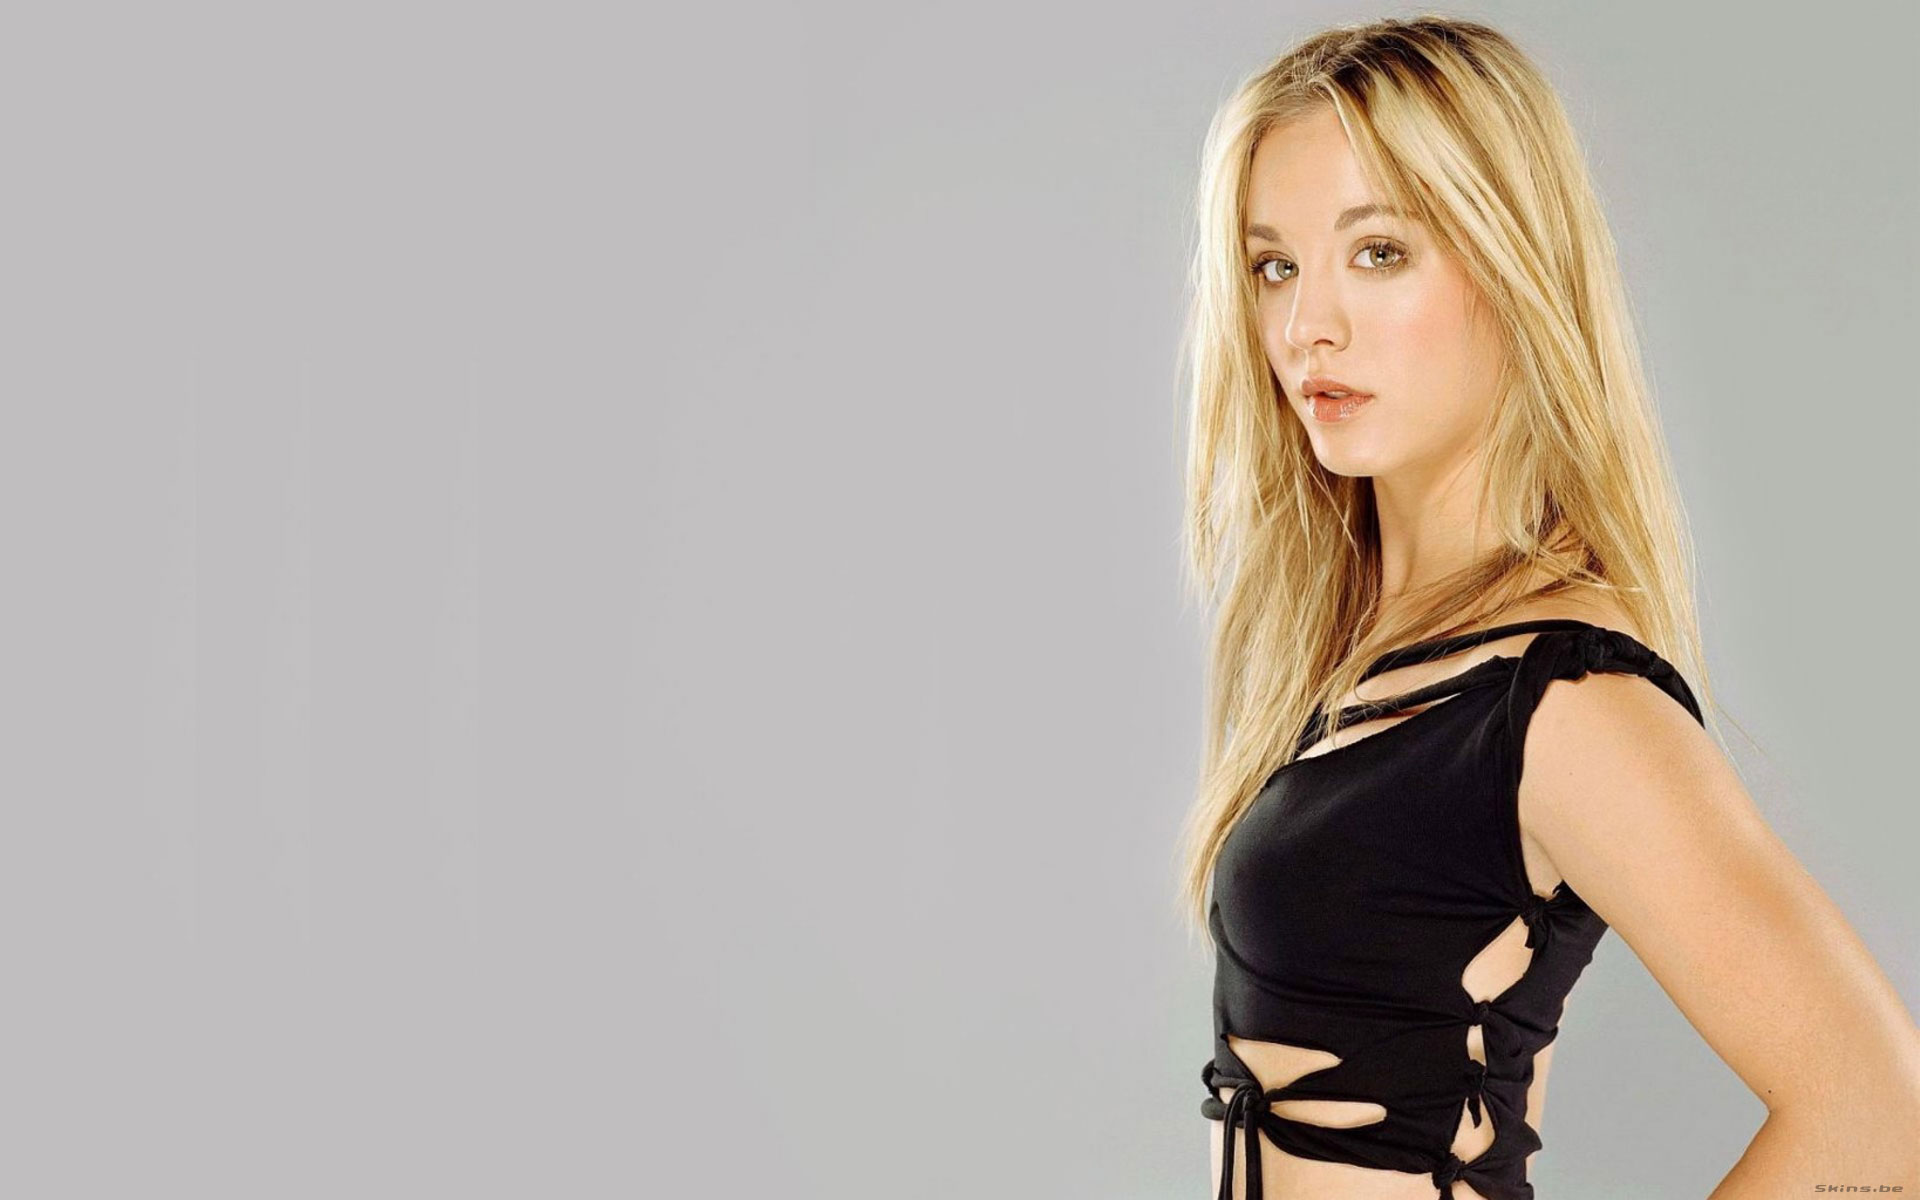 Kaley Cuoco desktop wallpaper download in widescreen hd 25345 1920x1200